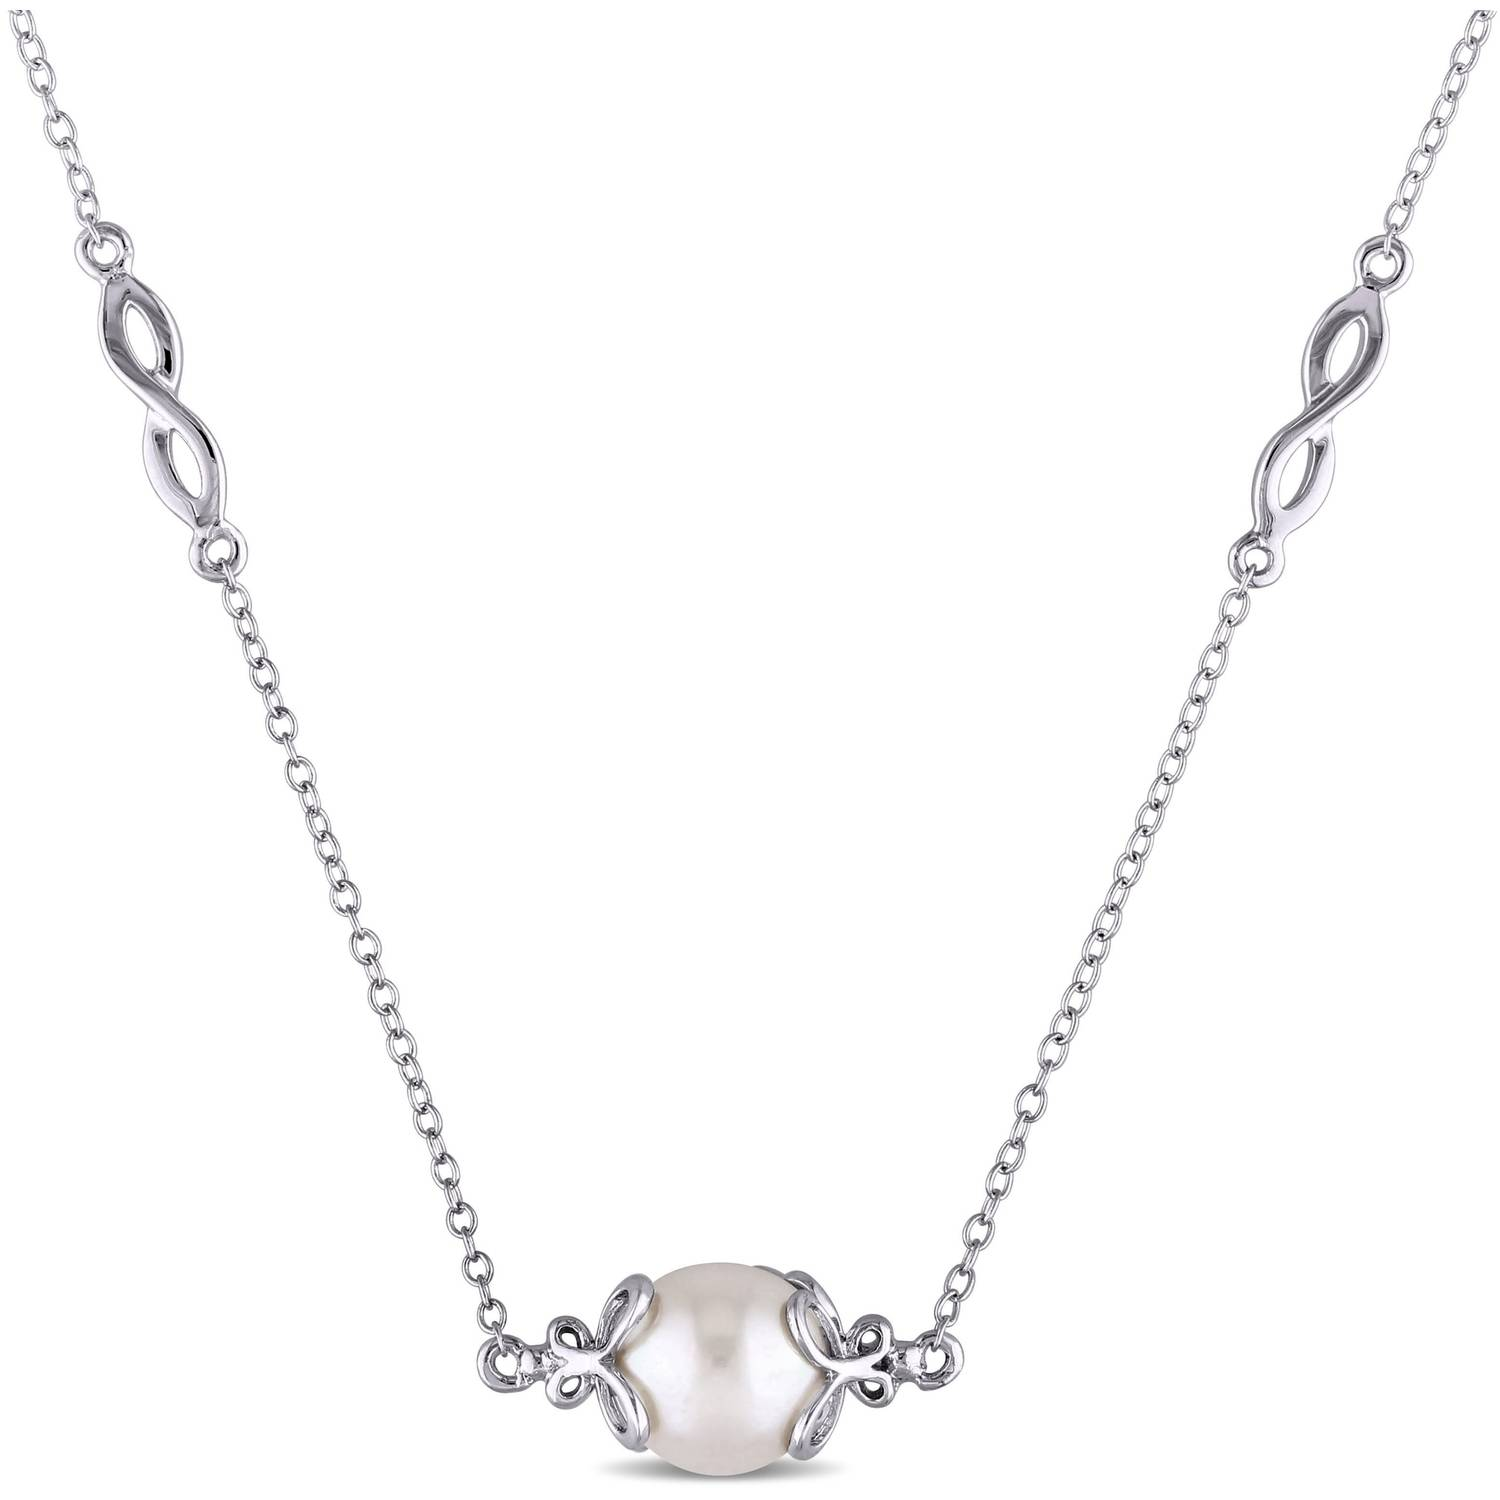 "Miabella 9-9.5mm White Cultured Freshwater Pearl Sterling Silver Infinity Tin-Cup Necklace, 36"" by Miabella"